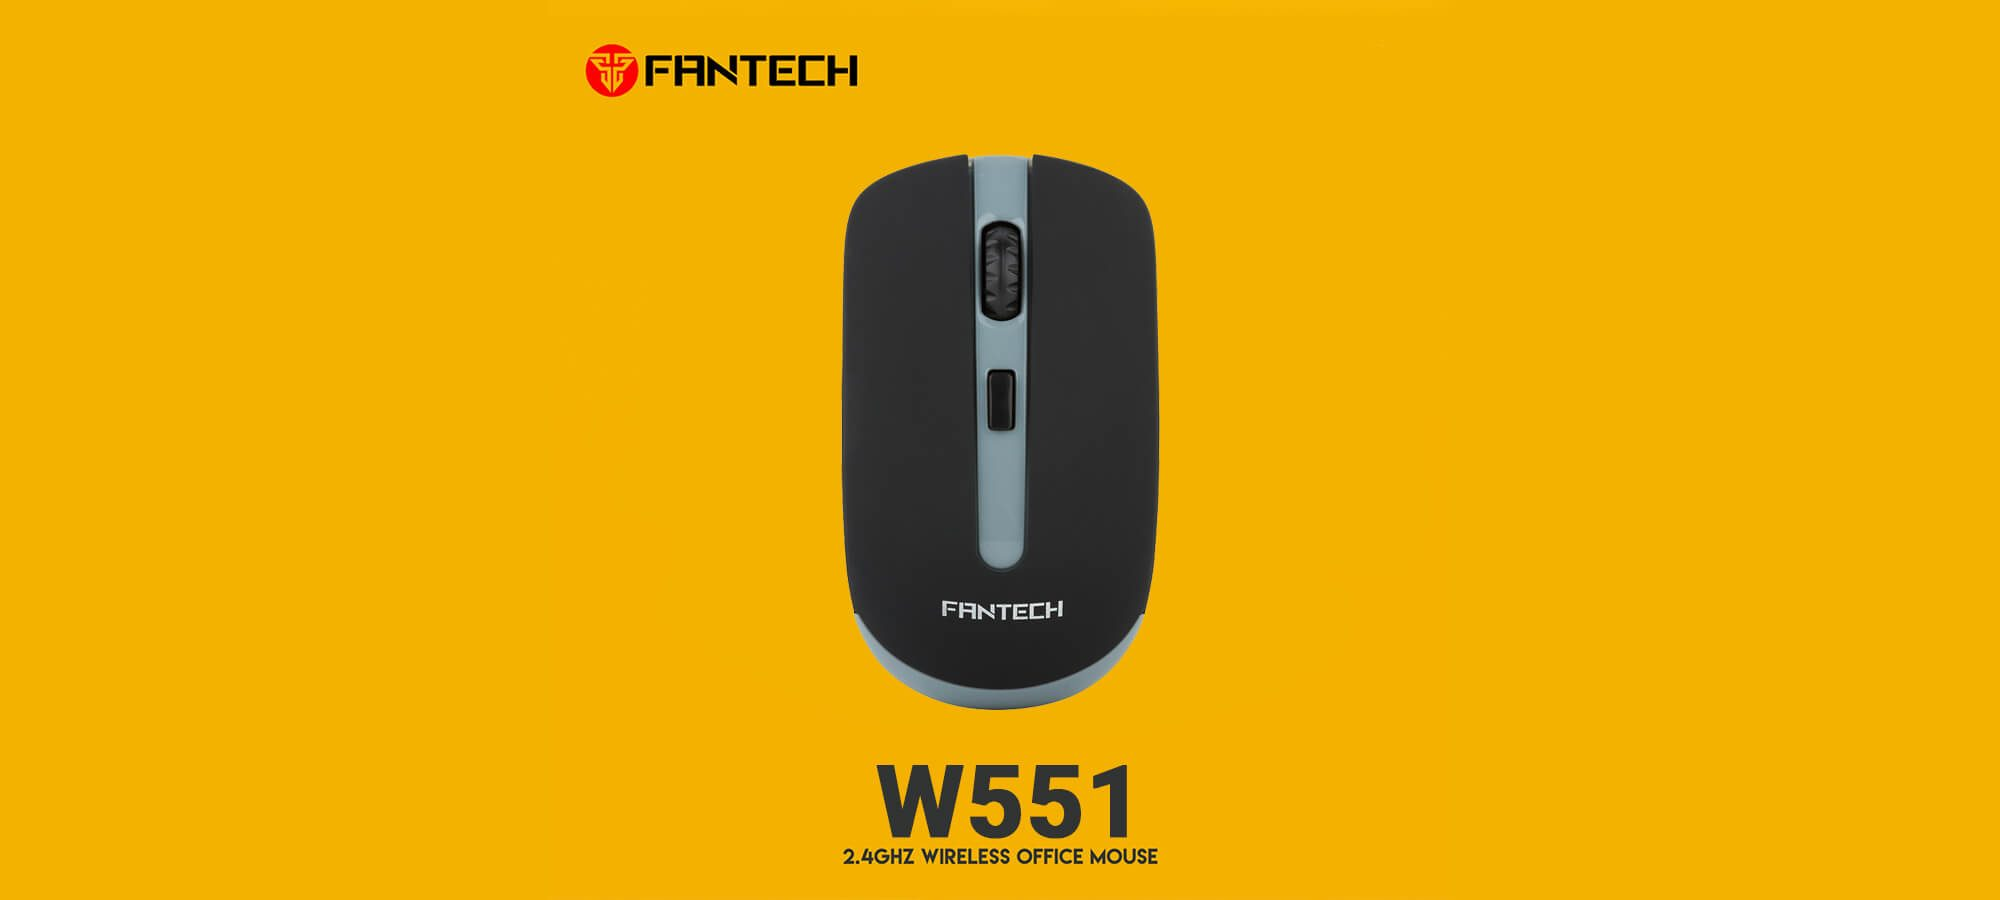 Мышь Fantech W551 Wireless